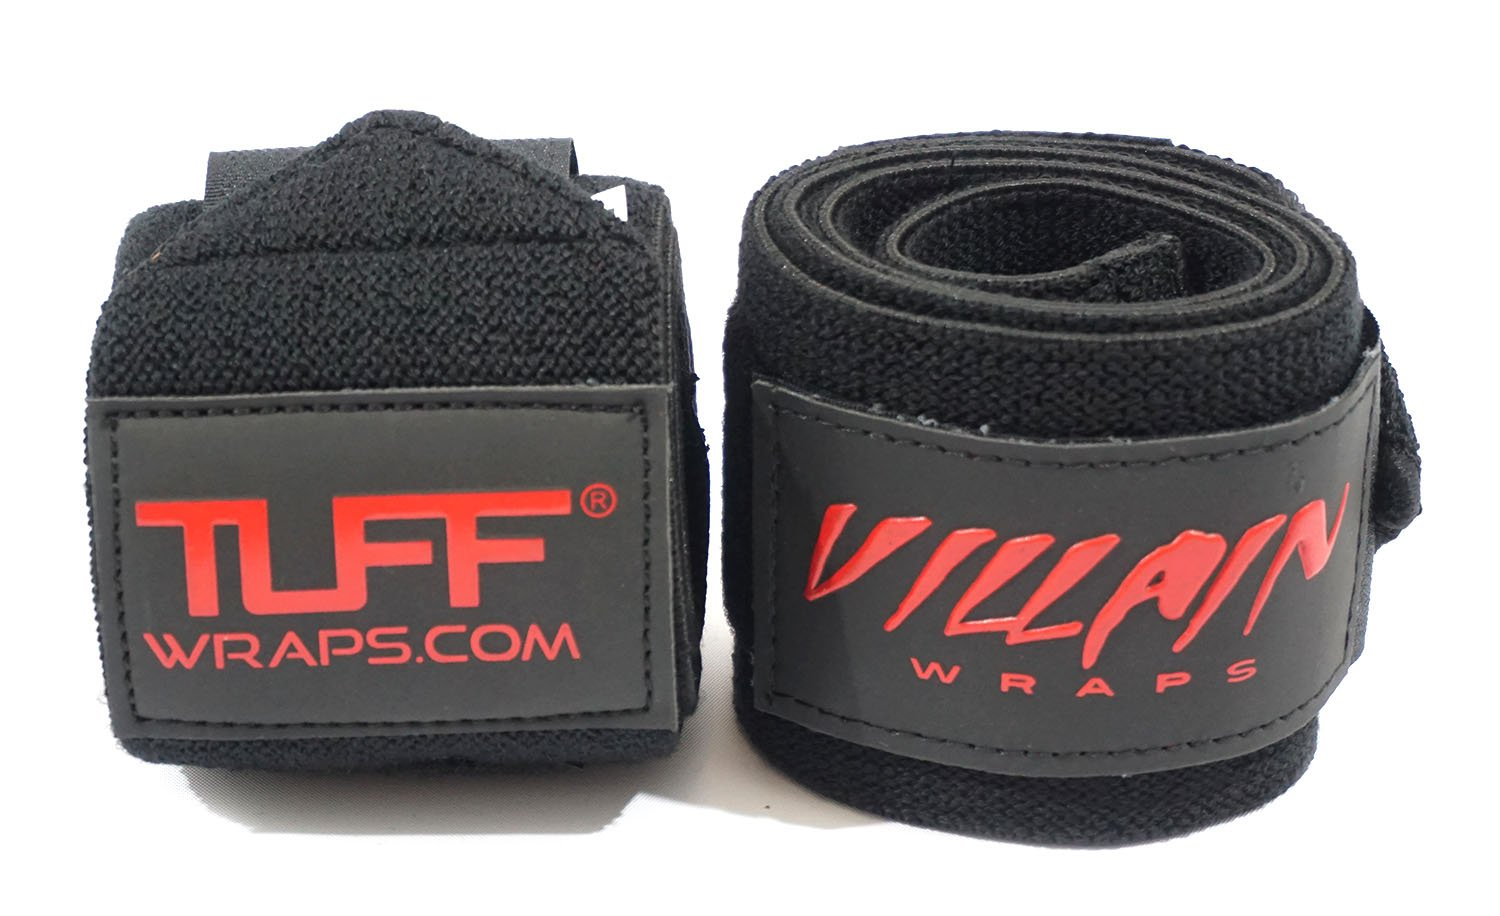 Villain Wrist Wraps 16'' for Powerlifting, Weightlifting, Strongman Training, Crossfit - (All Black, 16 Inches)